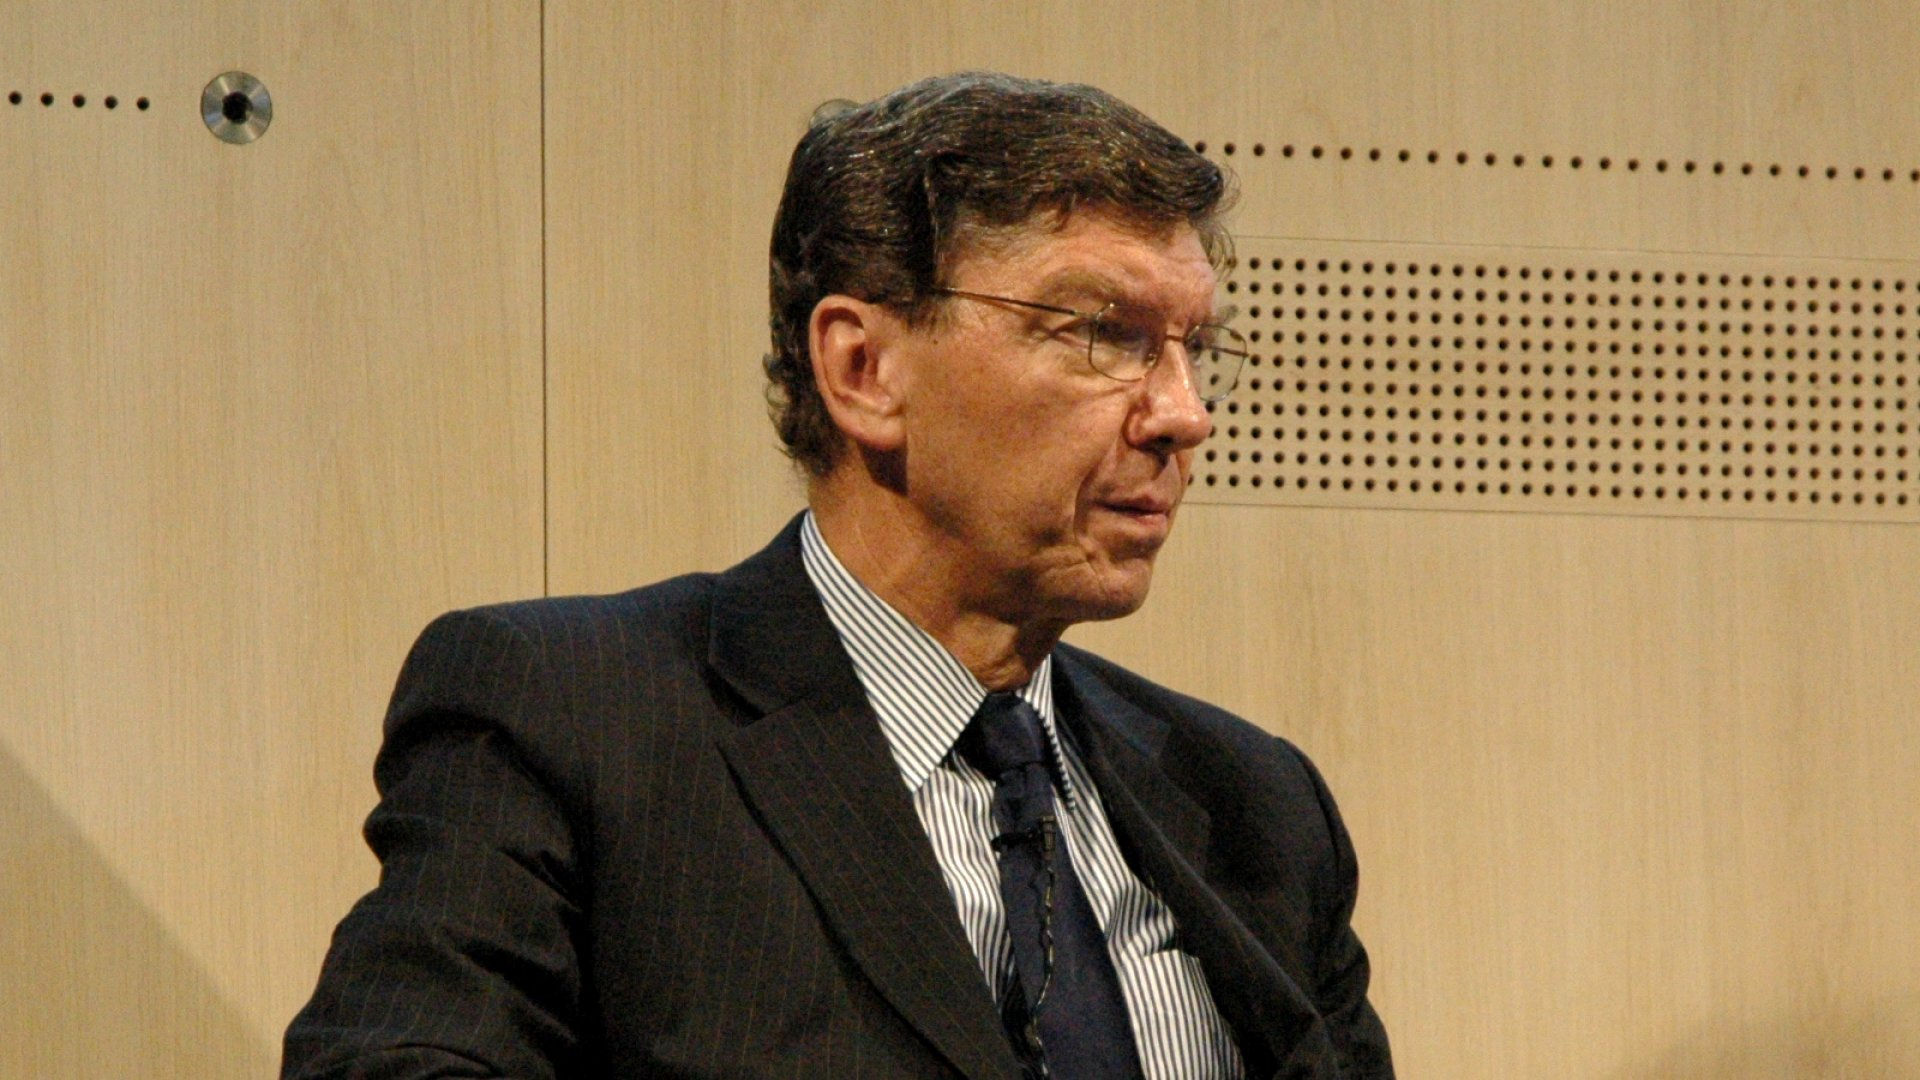 Clay Christensen: The Wrong Kind of Innovation